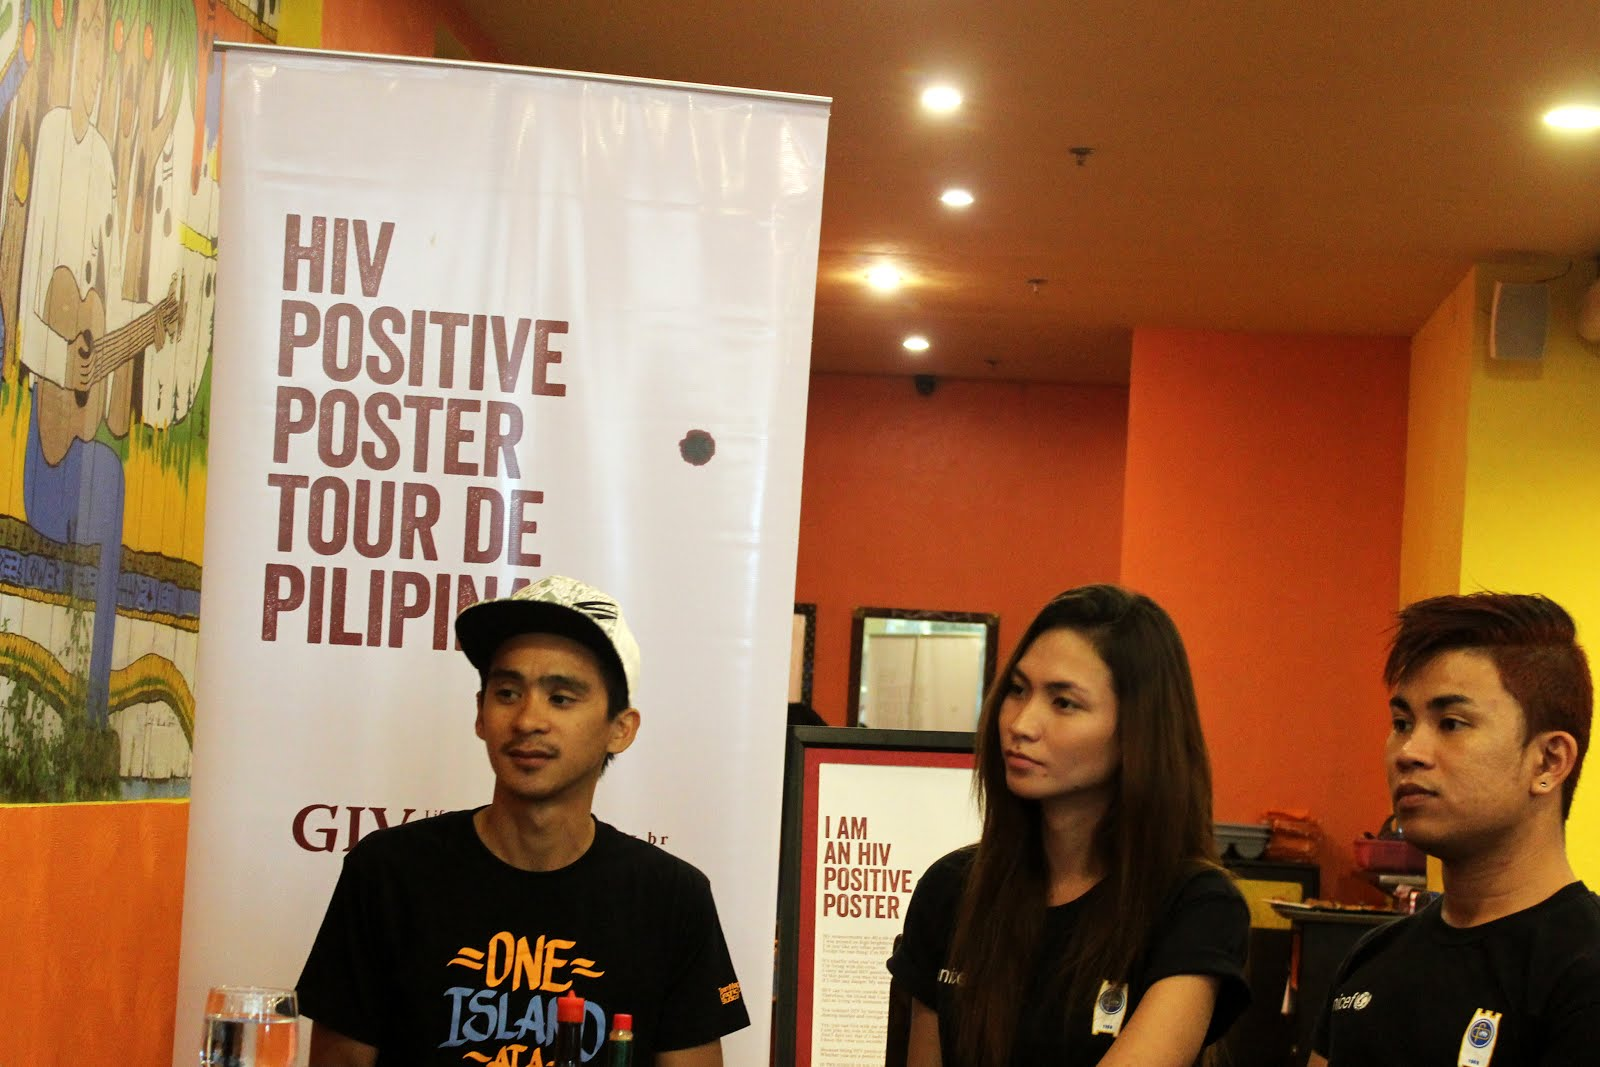 A thought-provoking poster raises HIV awareness  HIV, AIDS, Awareness, Creative, Creativity, Inspiration, Poster, Faustine Luell Angeles Jr, Iloilo, Positive Poster Tour, Advocacy, Pedal for HIV, Tour De Pilipinas